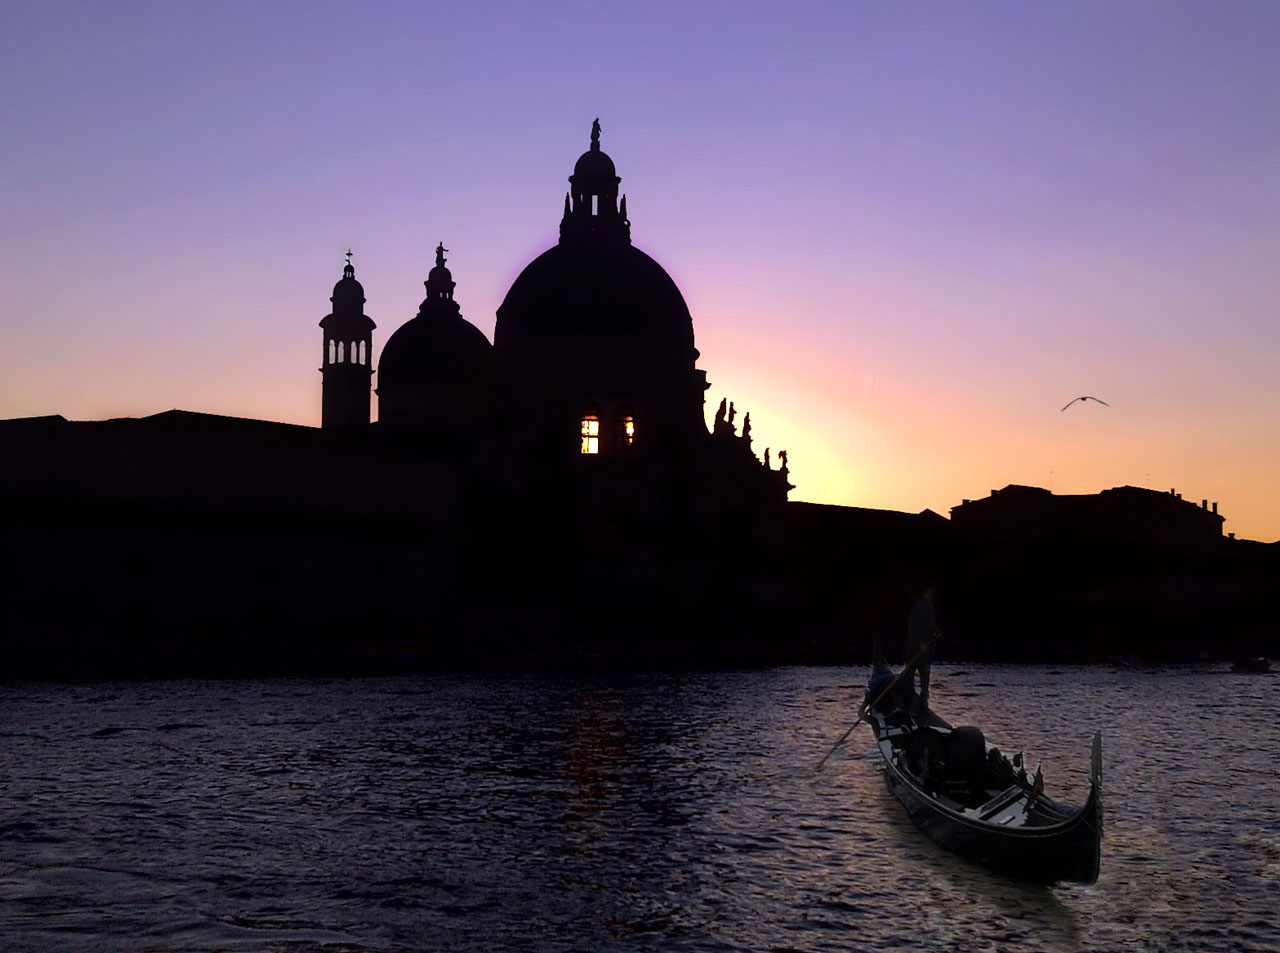 Cathedral  Silhouette  from  Venice,   Italy